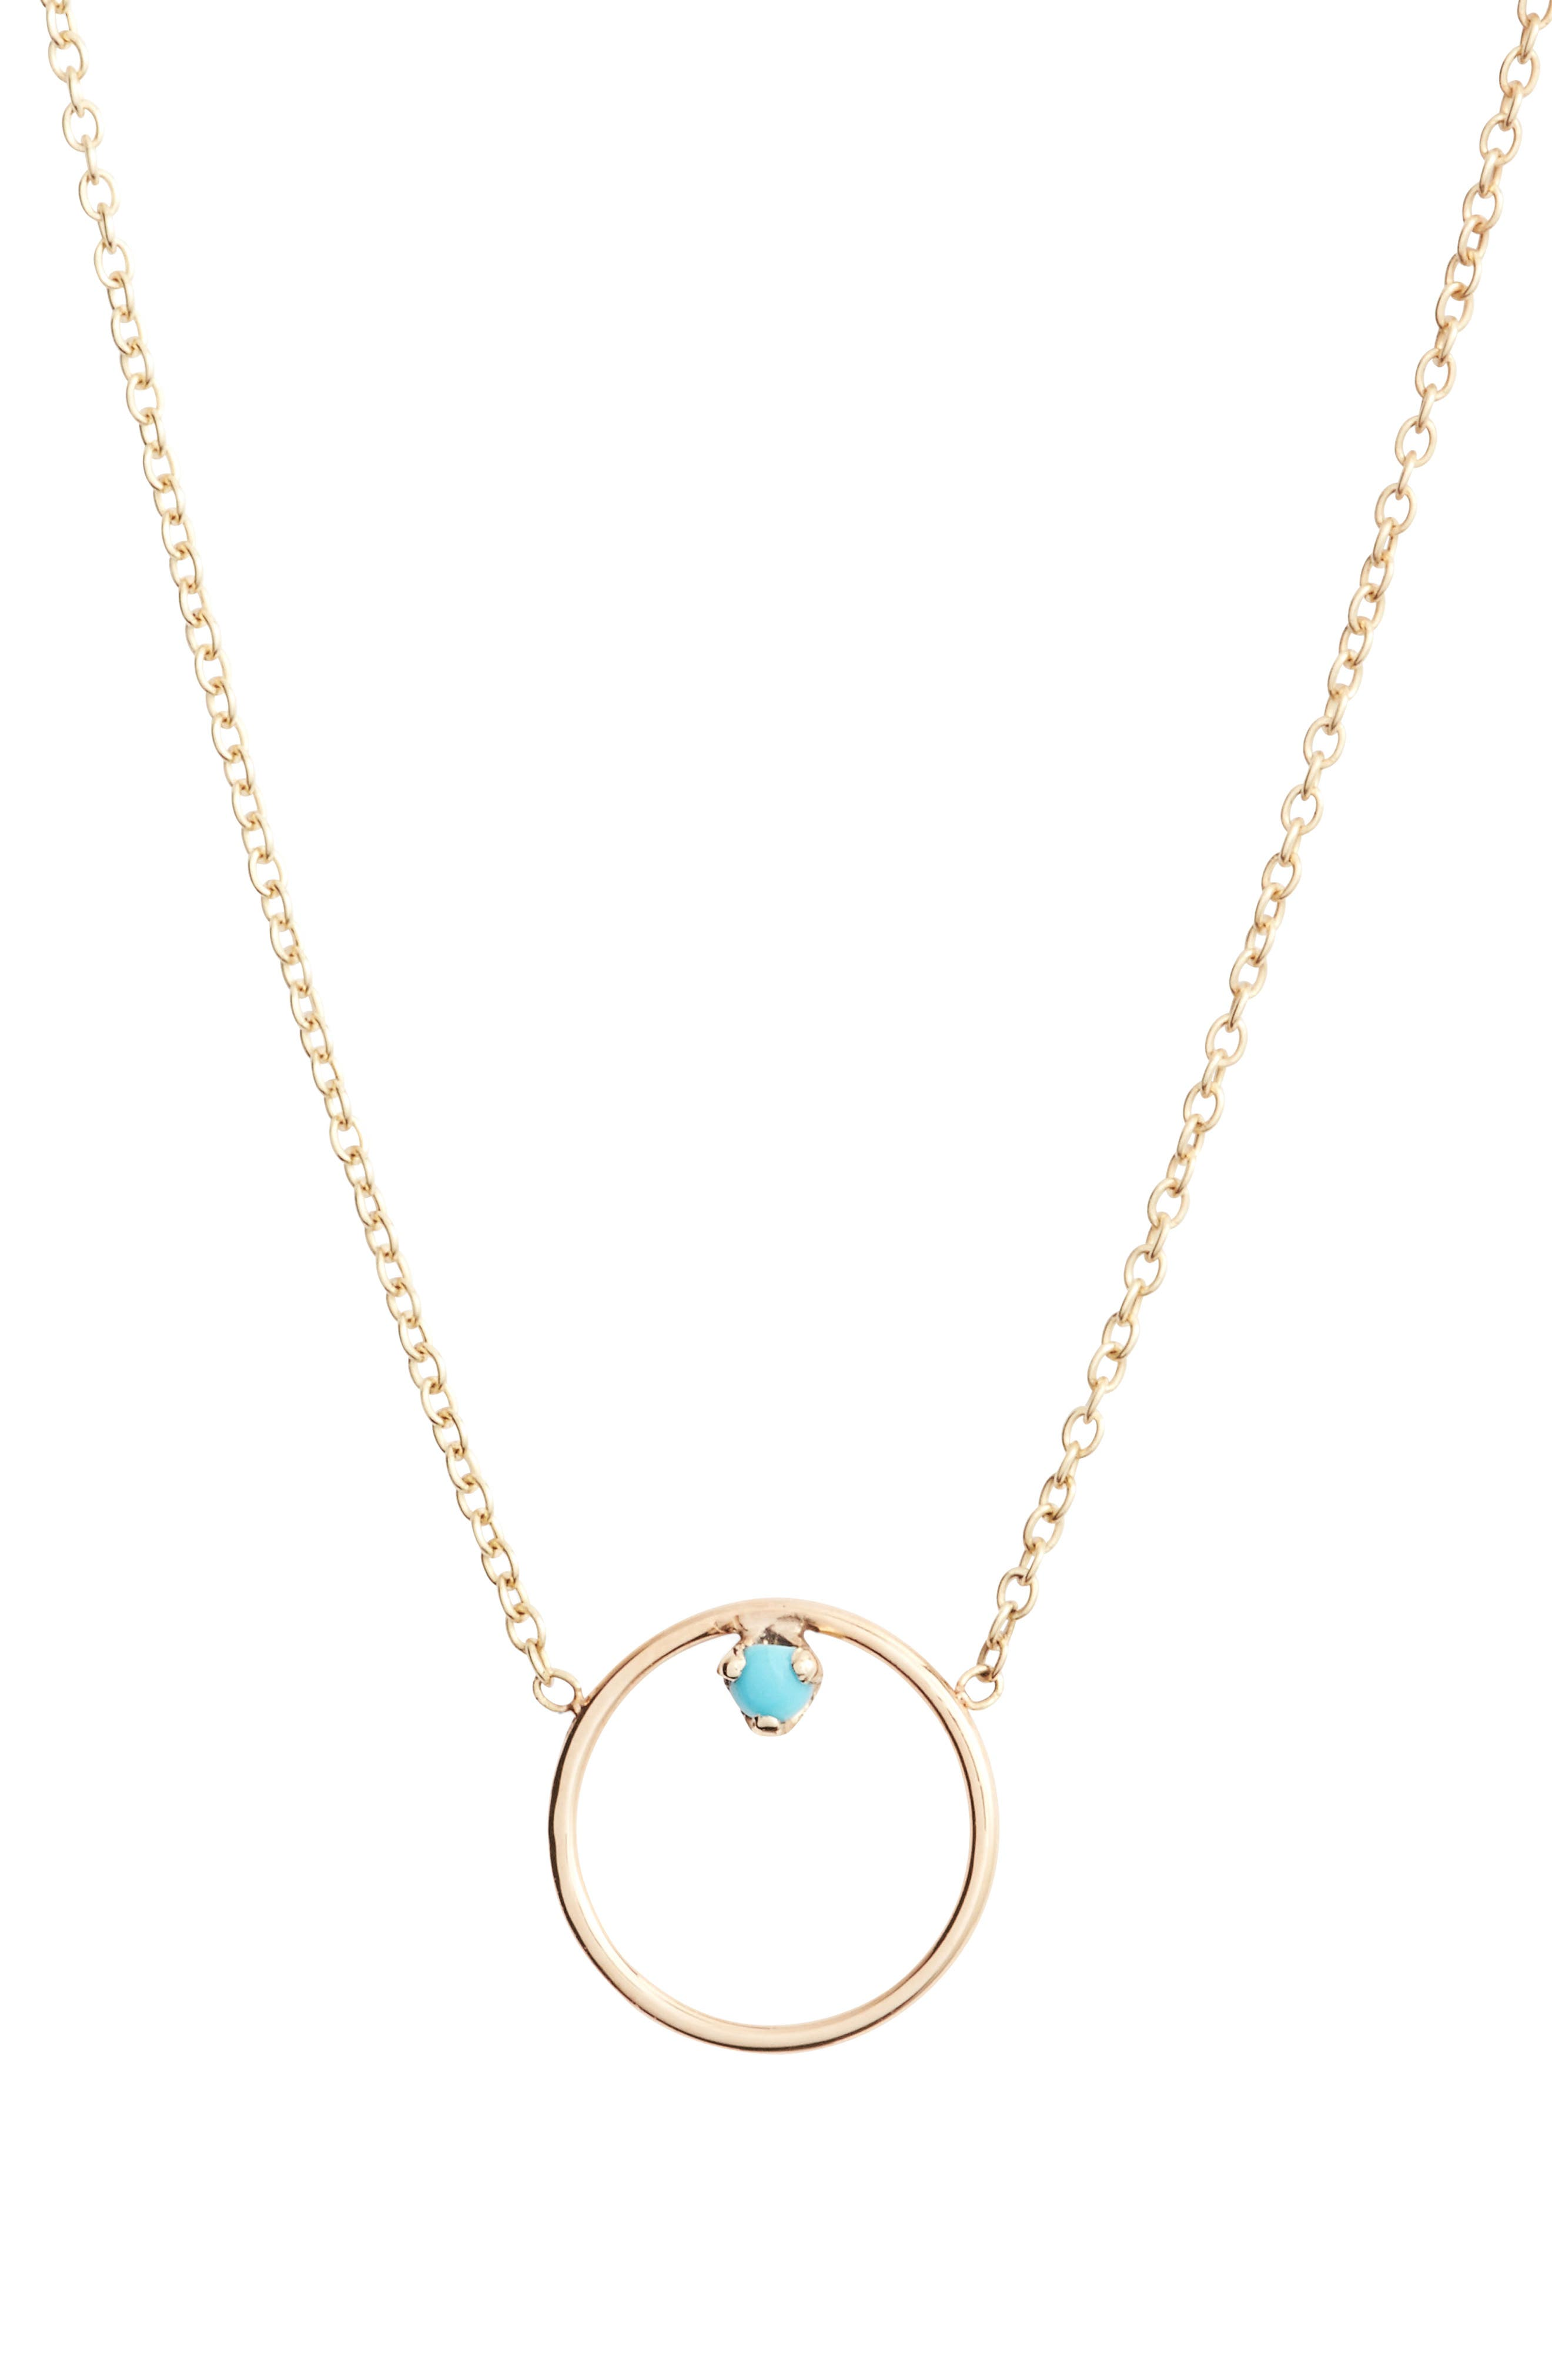 Turquoise Circle Pendant Necklace,                             Main thumbnail 1, color,                             710